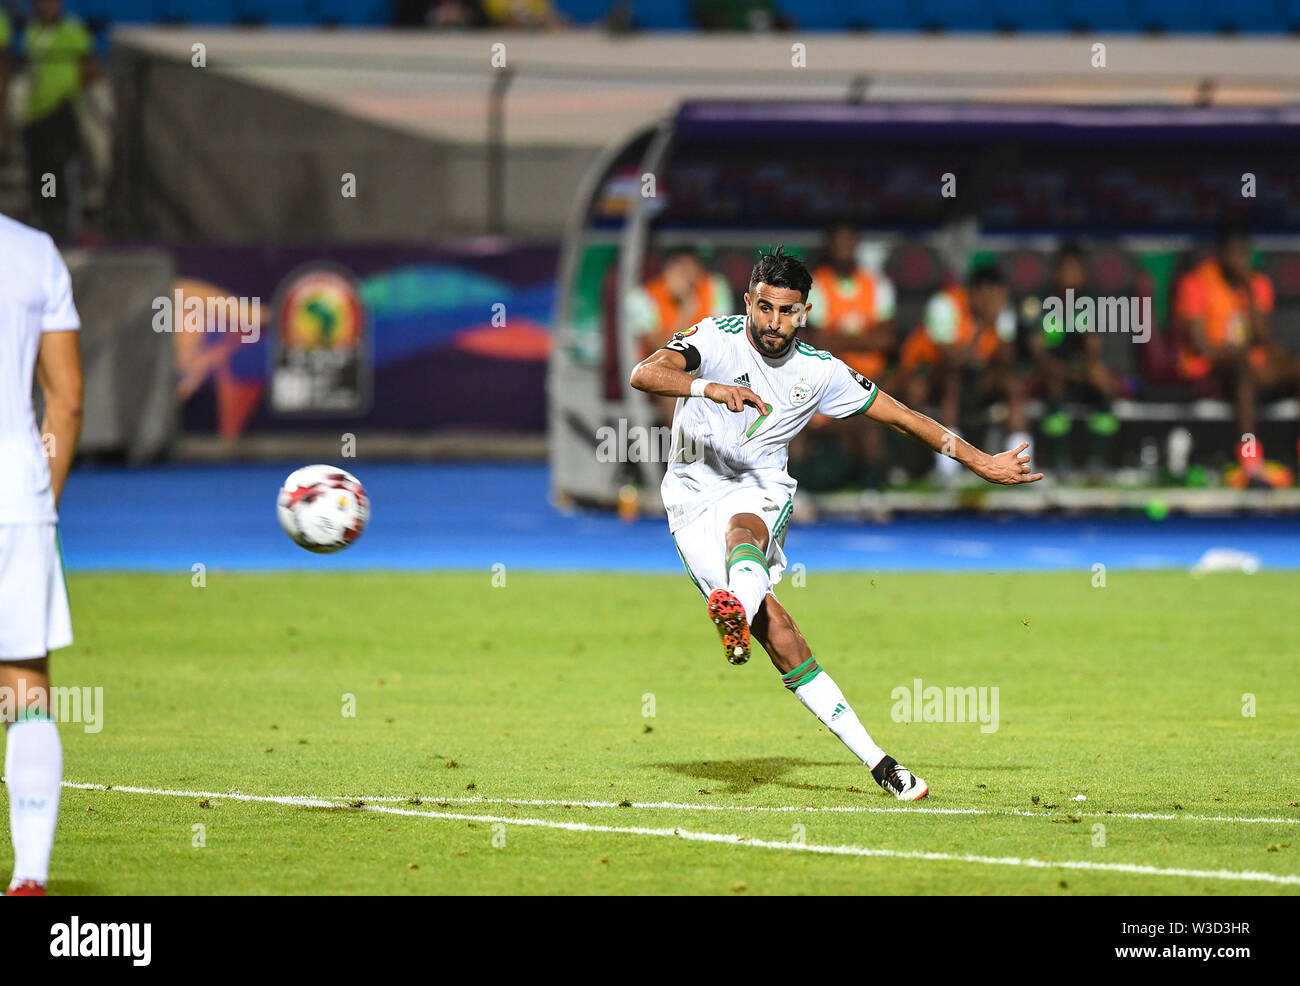 Cairo. 14th July, 2019. Riyad Mahrez of Algeria scores during the semifinal match between Algeria and Nigeria at the 2019 Africa Cup of Nations in Cairo, Egypt on July 14, 2019. Credit: Li Yan/Xinhua/Alamy Live News - Stock Image